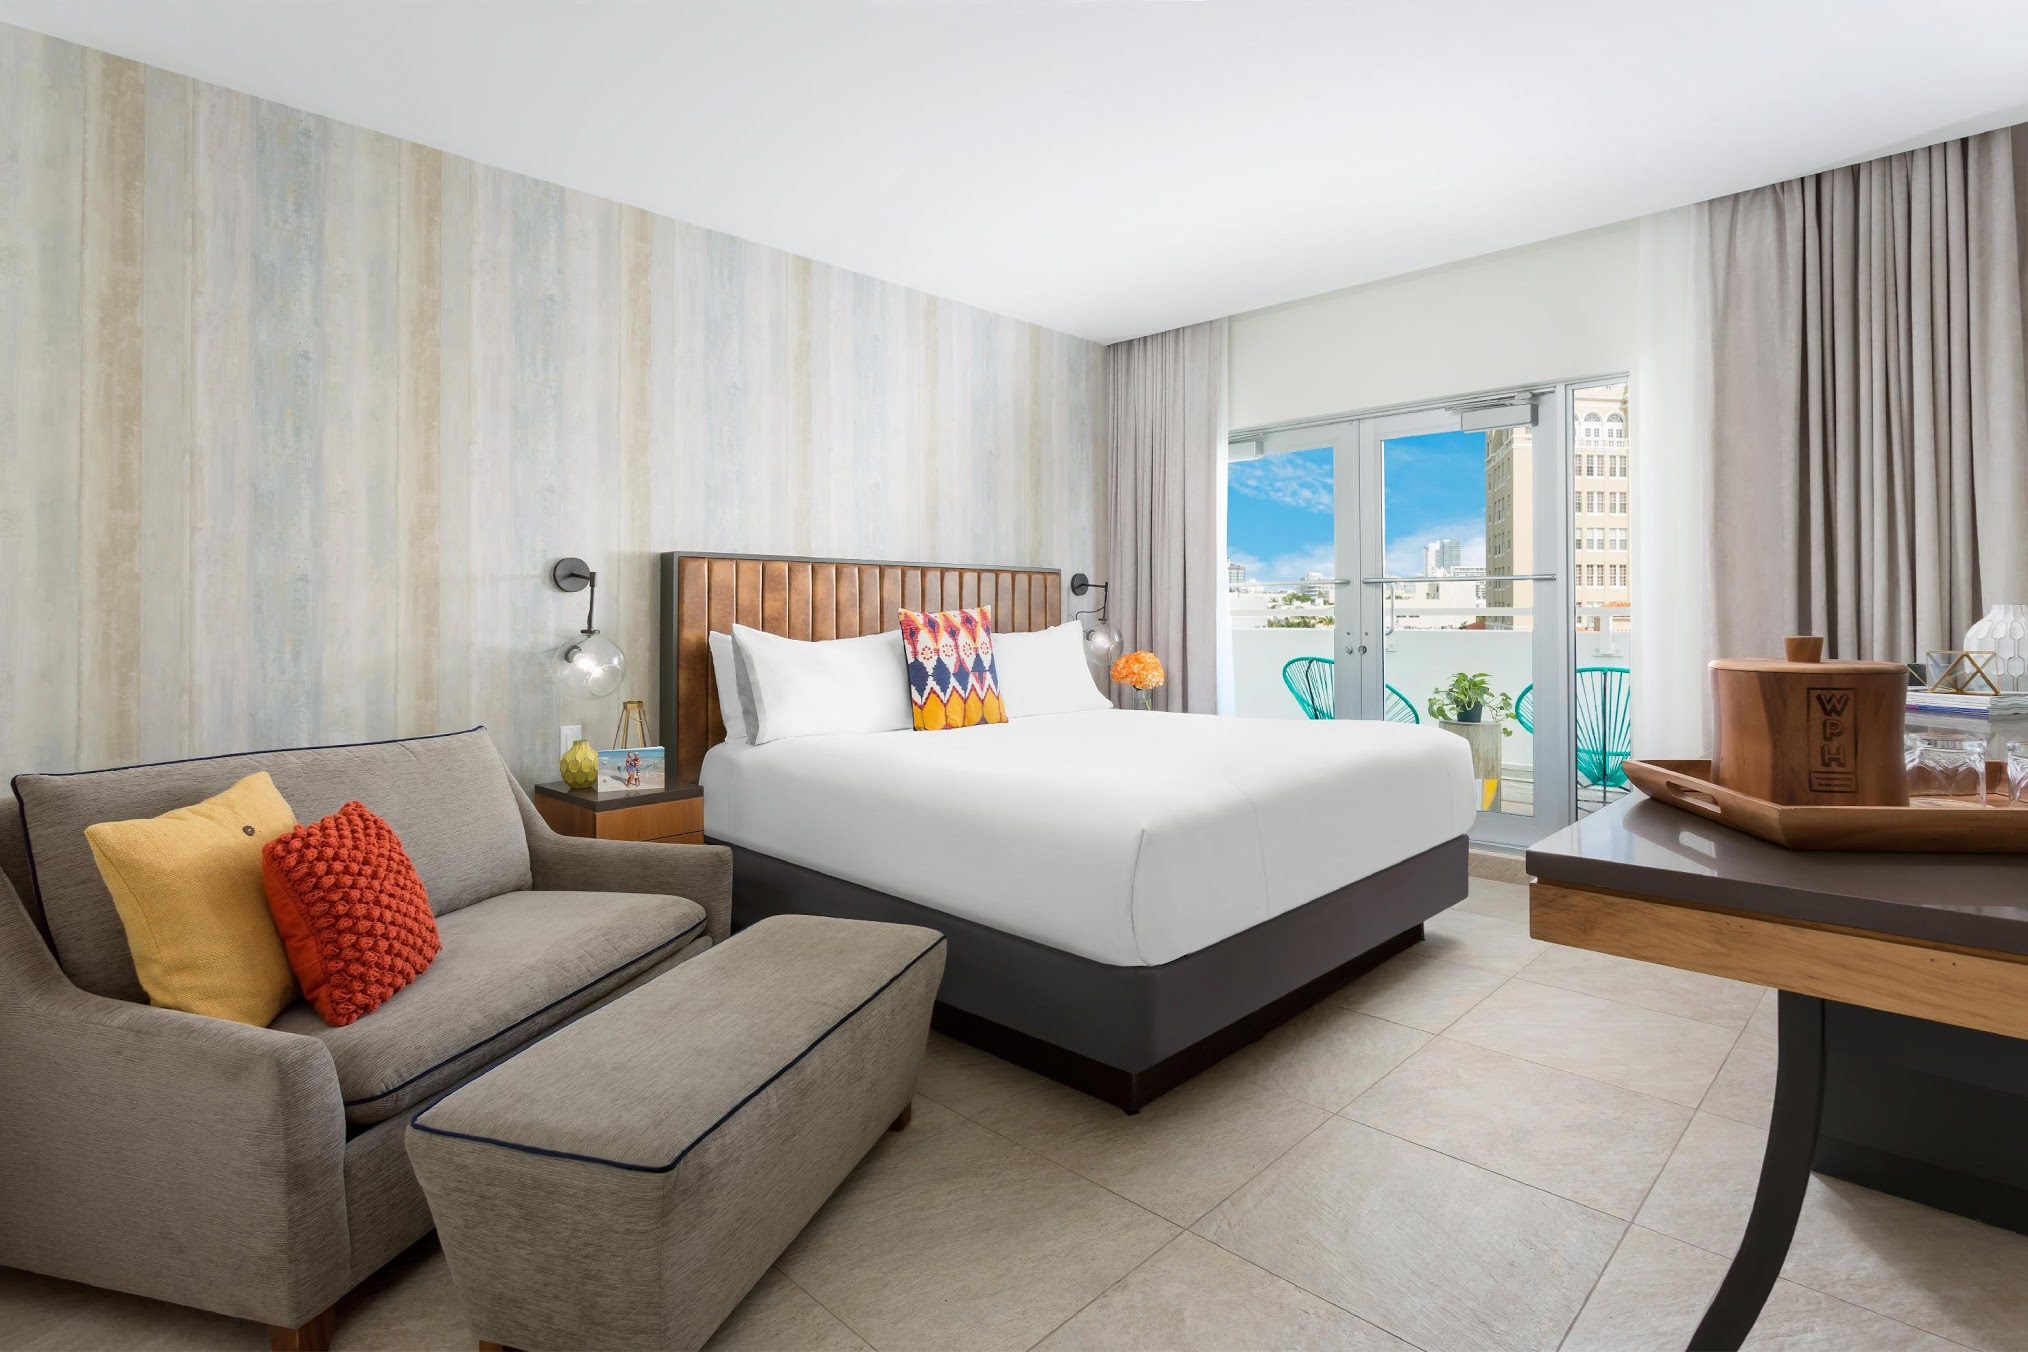 Inside a guest room at the Washington Park Hotel in Miami Beach